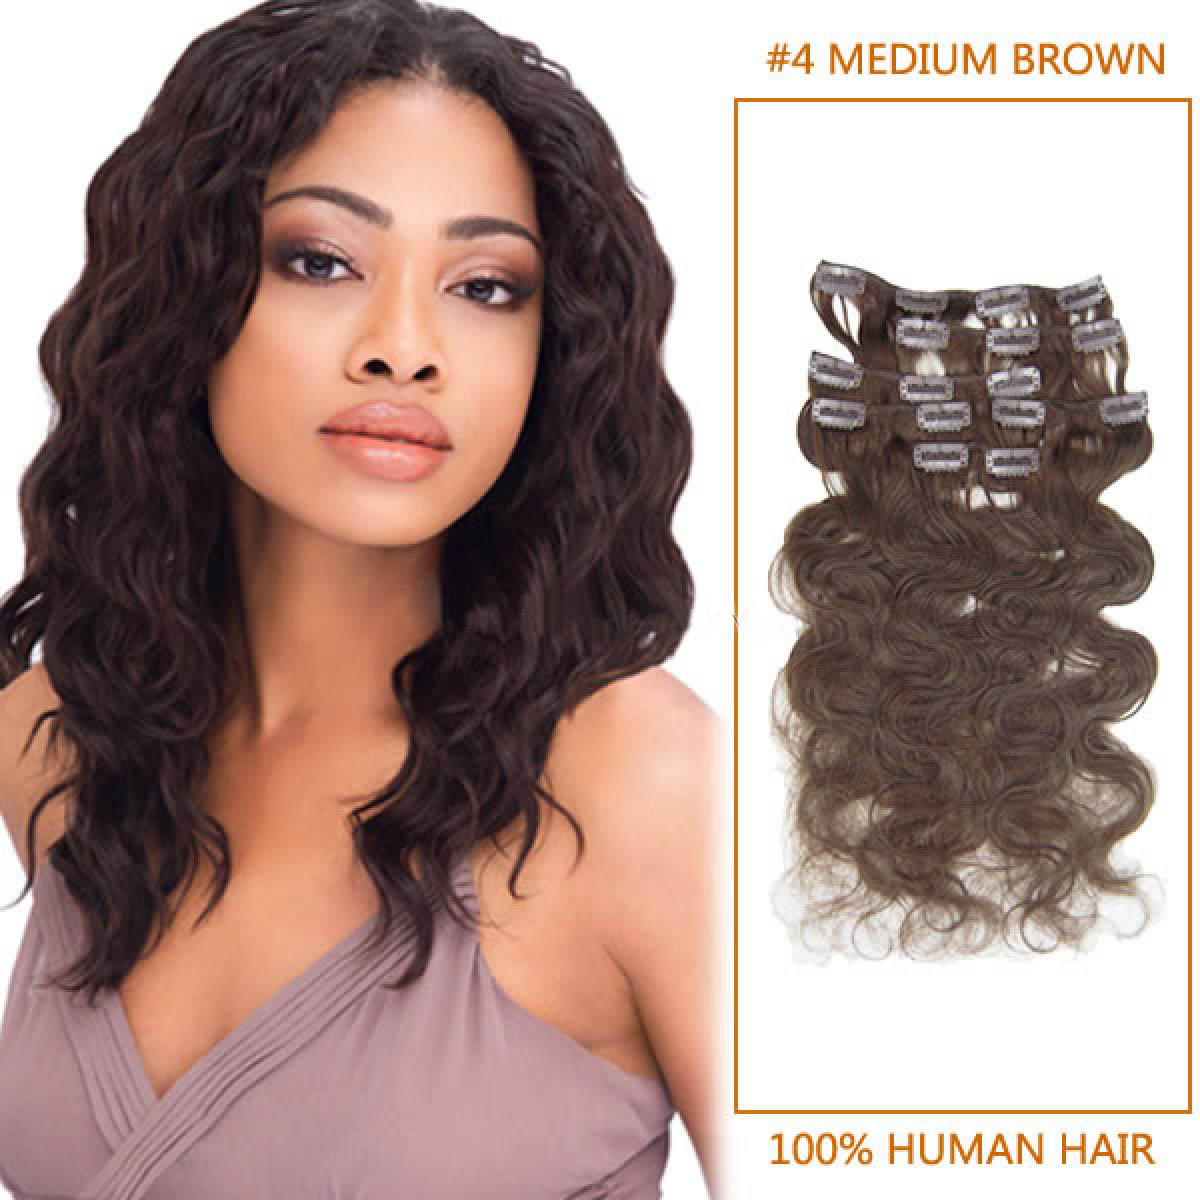 Wavy hair extensions remy tape on and off extensions wavy hair extensions remy 97 pmusecretfo Images